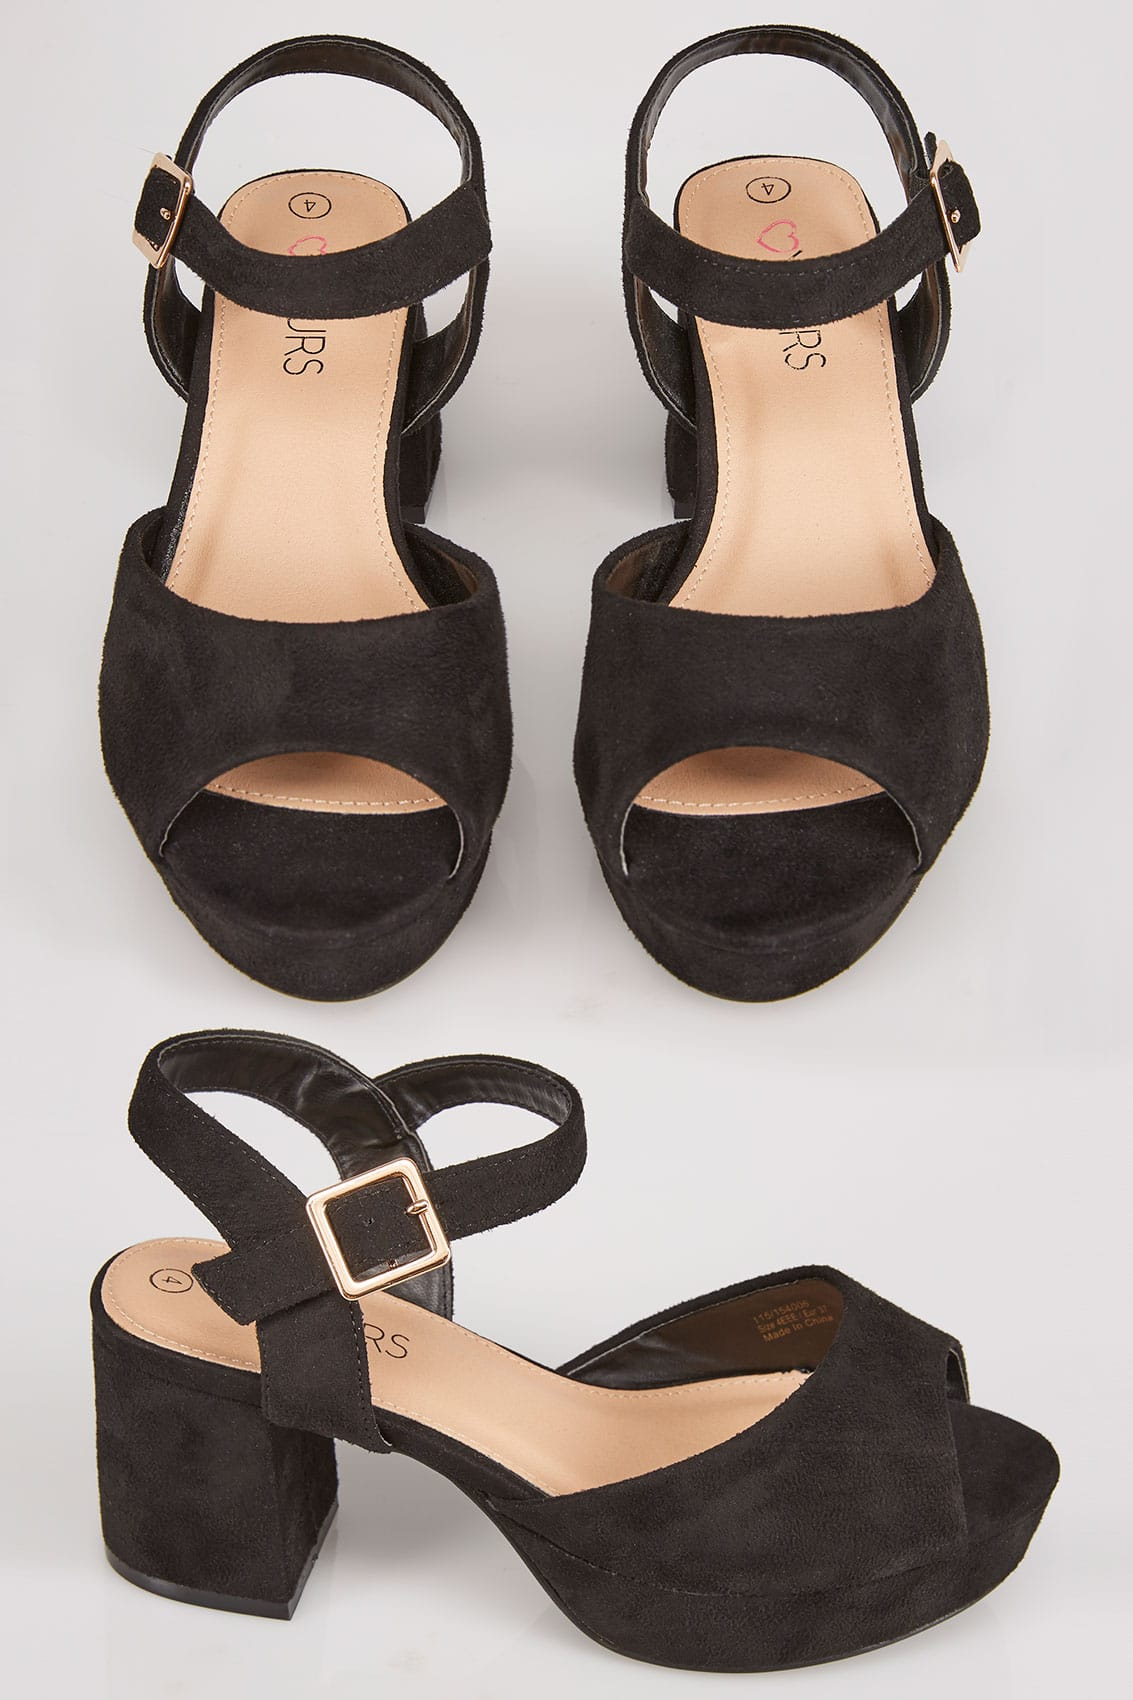 Black Platform Sandals With Block Heel In TRUE EEE Fit